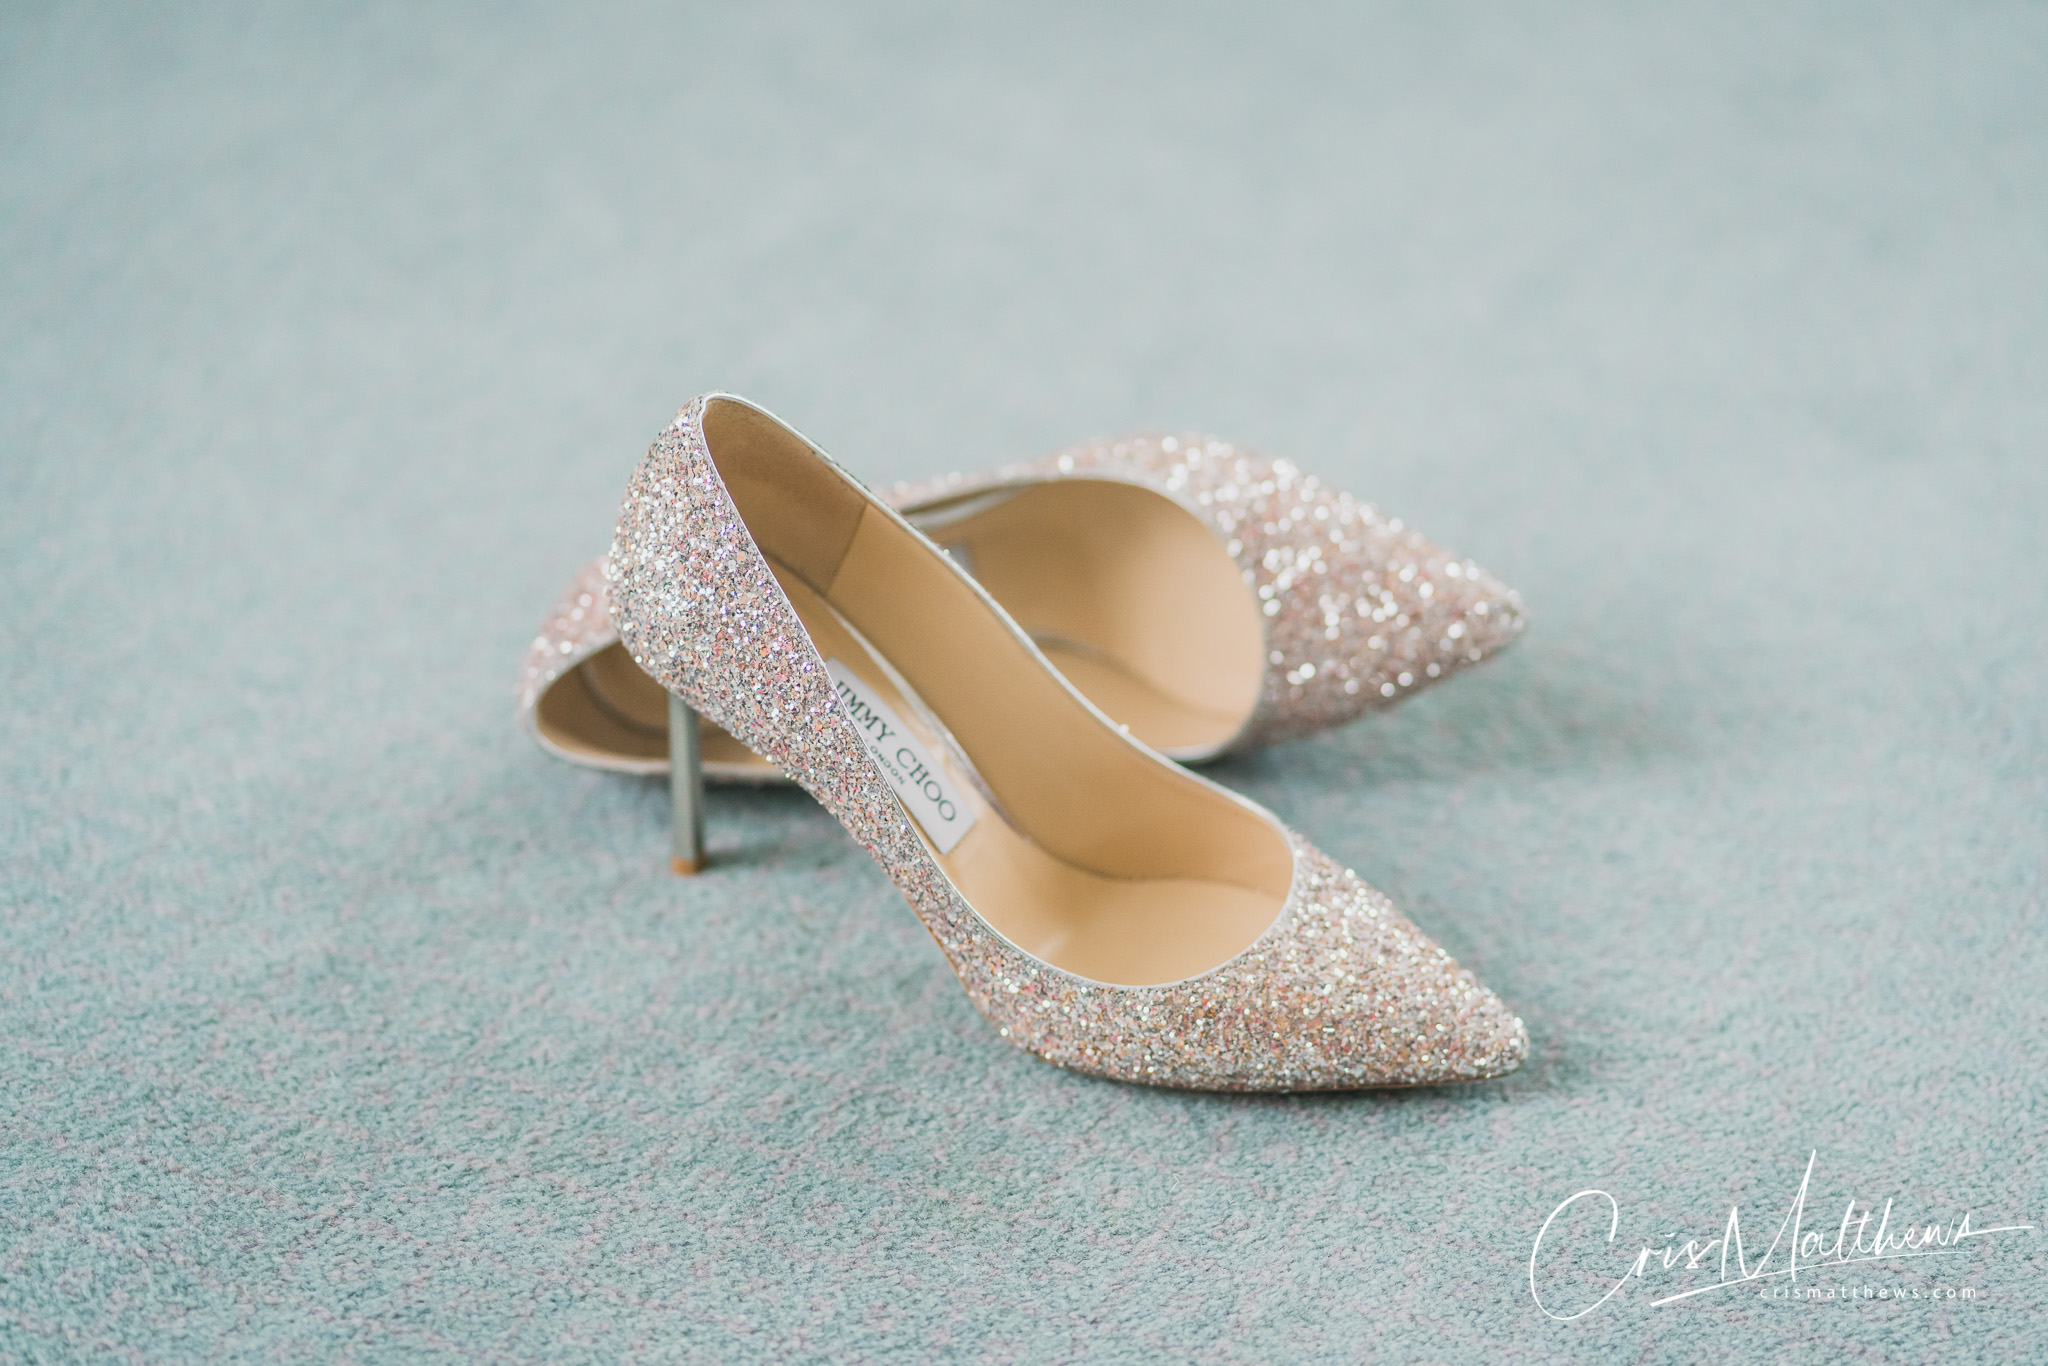 Shoes at Hawkstone Hall Wedding Photography